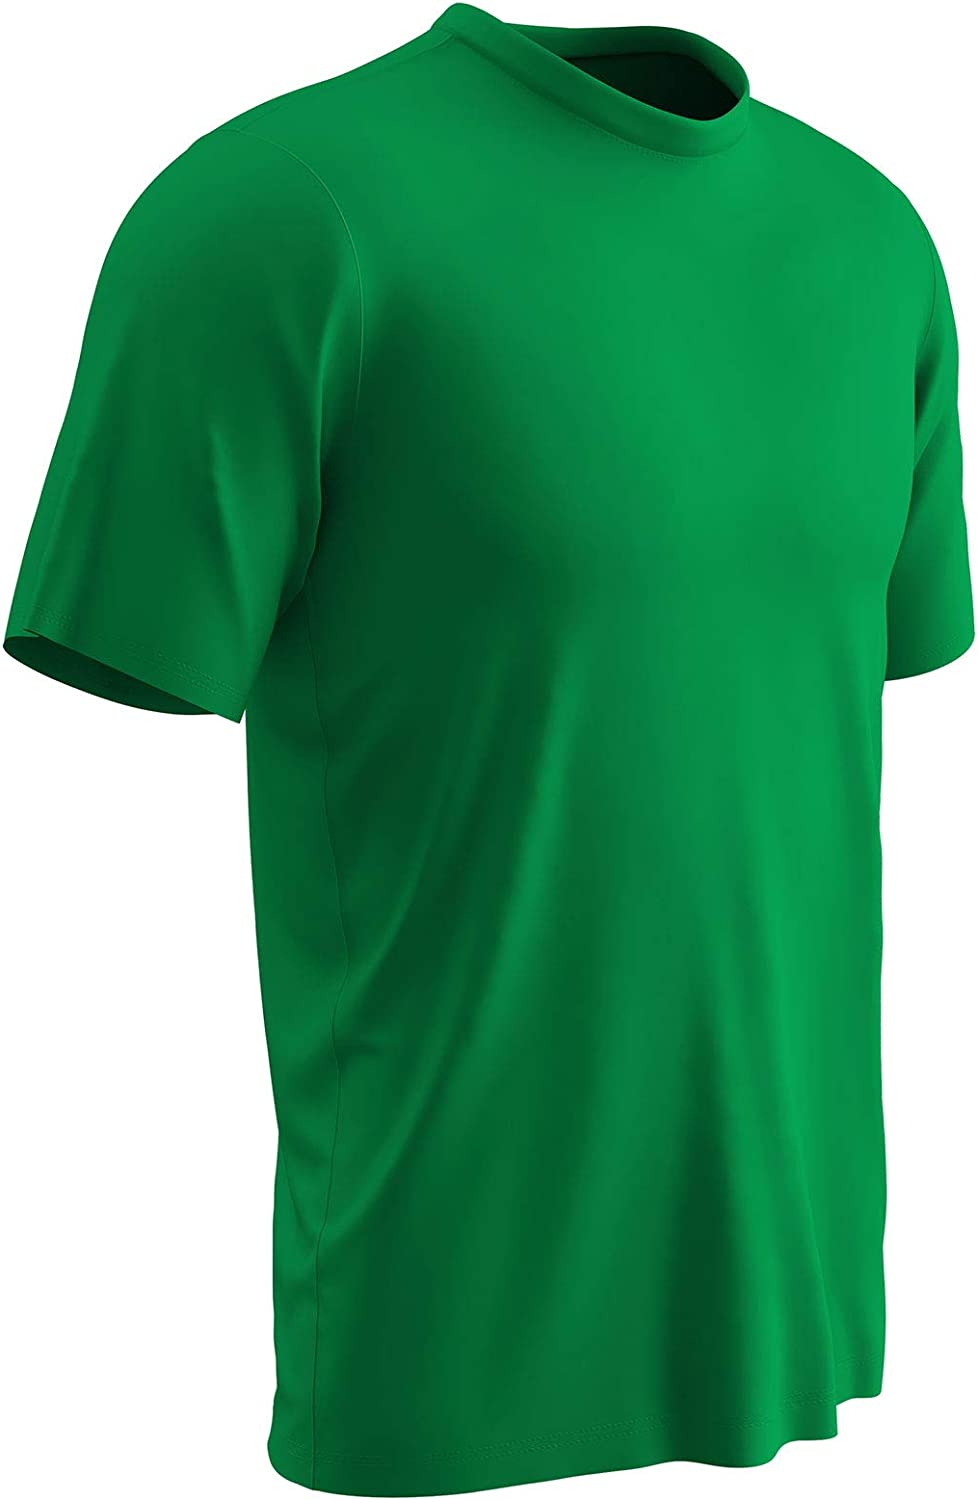 CHAMPRO Vision Lightweight Polyester T-Shirt Jersey Kelly Green Adult Small